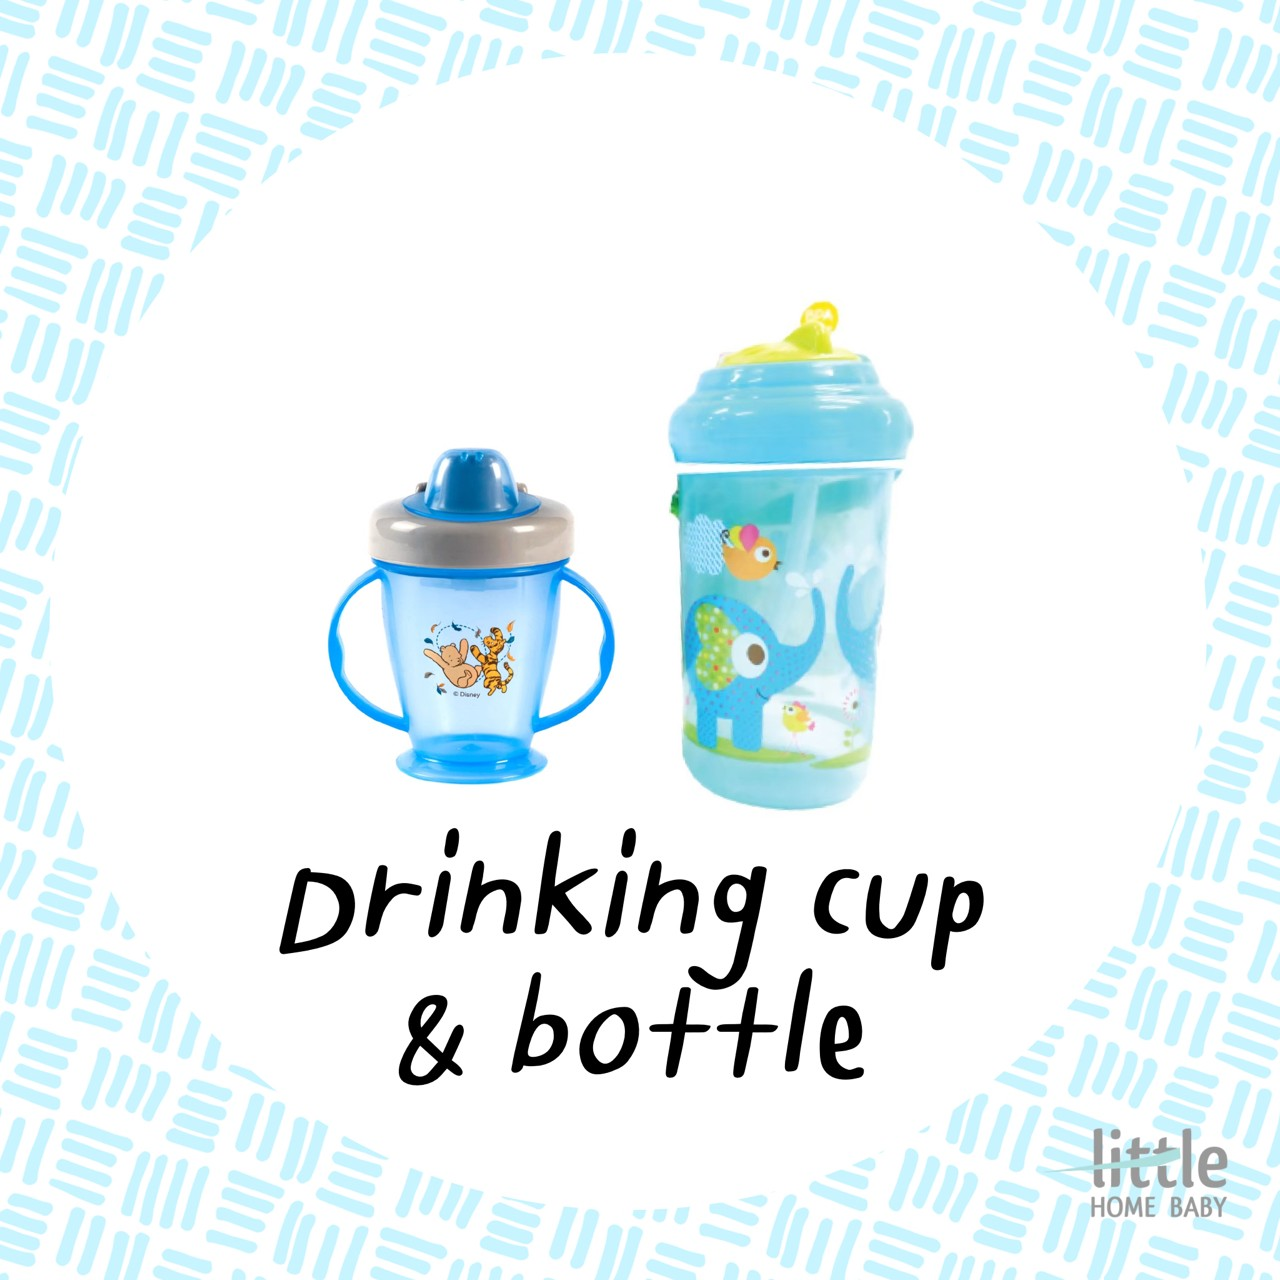 Drinking cup and bottle